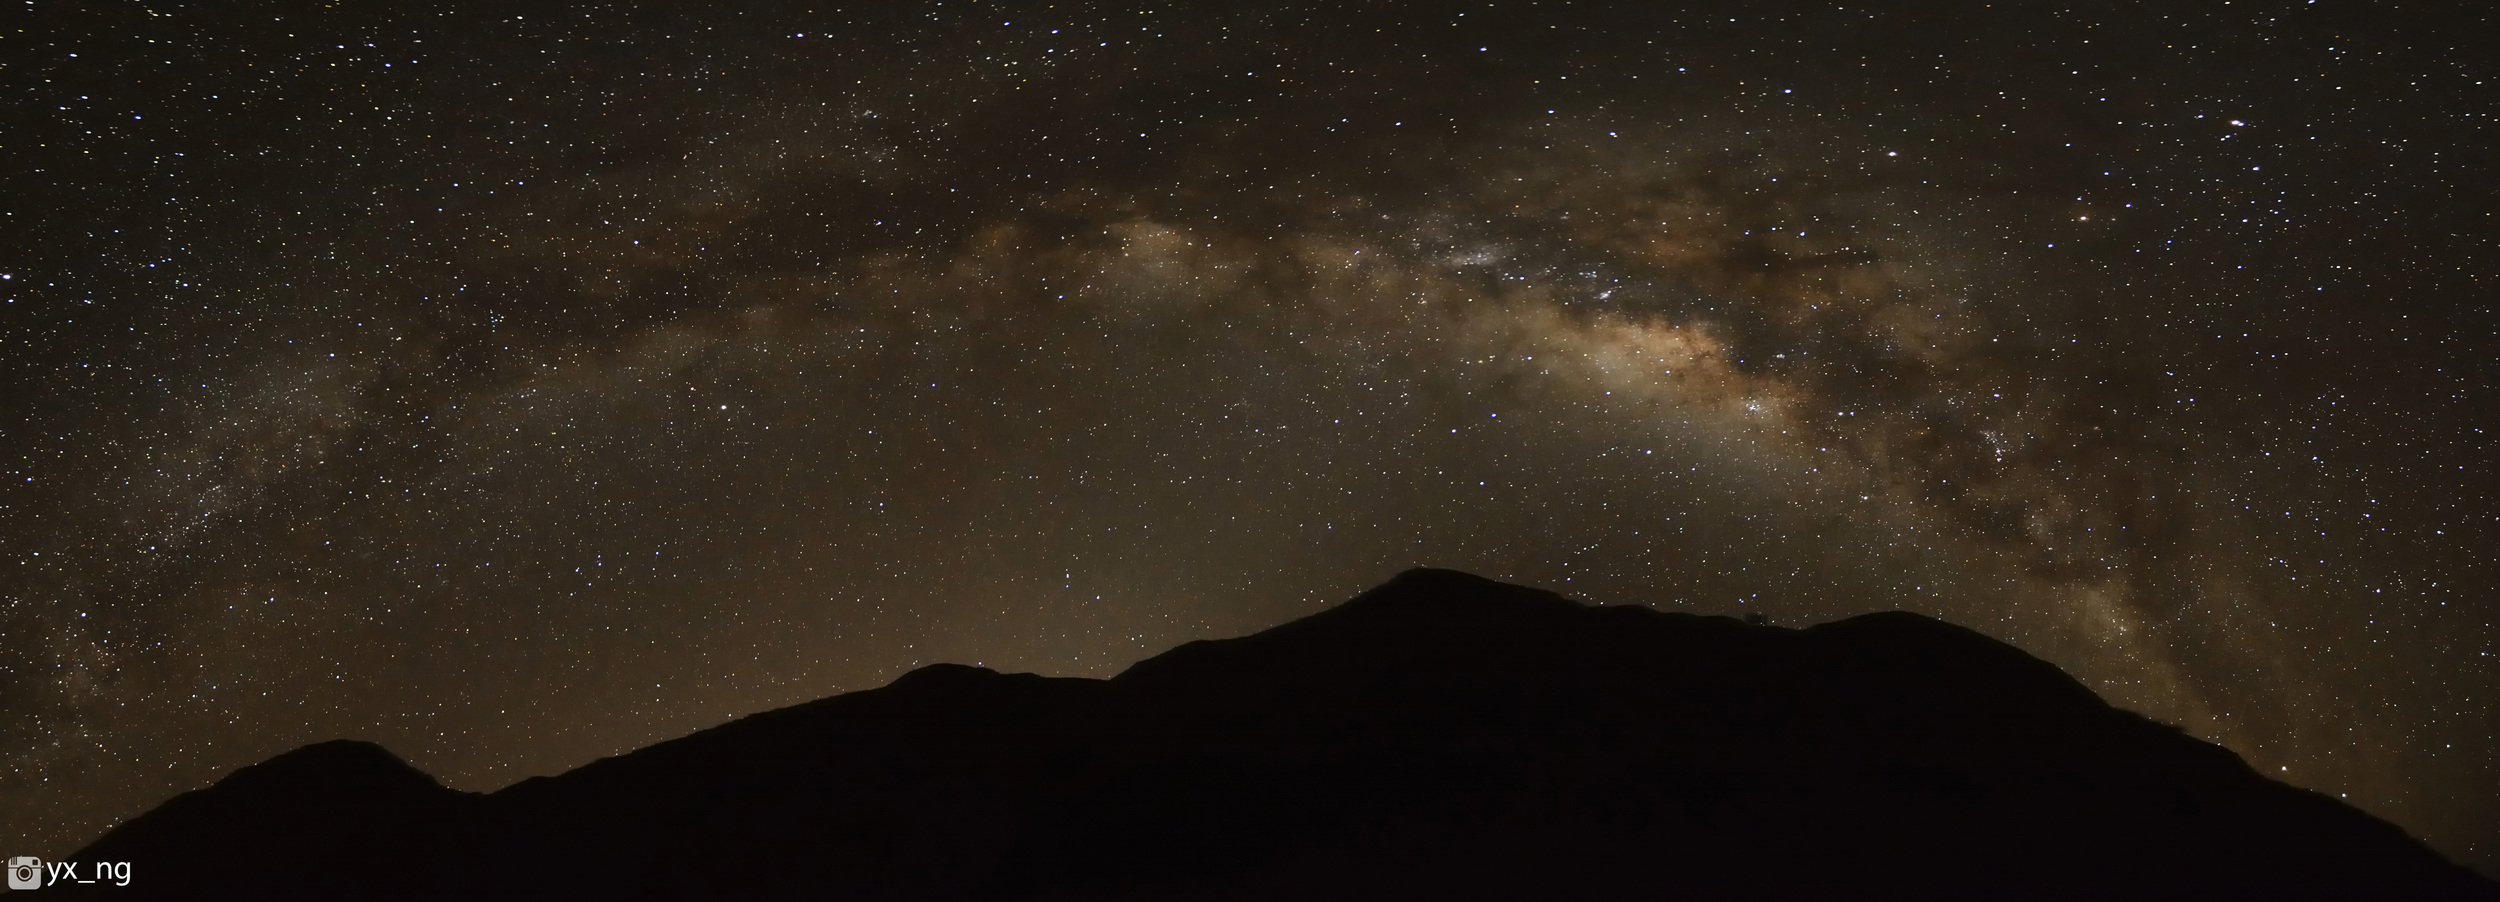 Blessed to see Milky Way in horizontal. I attempted my first night panorama. 9 shots merged using PS Photomerge. F/2.8 15 Sec ISO 6400. 11mm Tokina Nikon D7100.